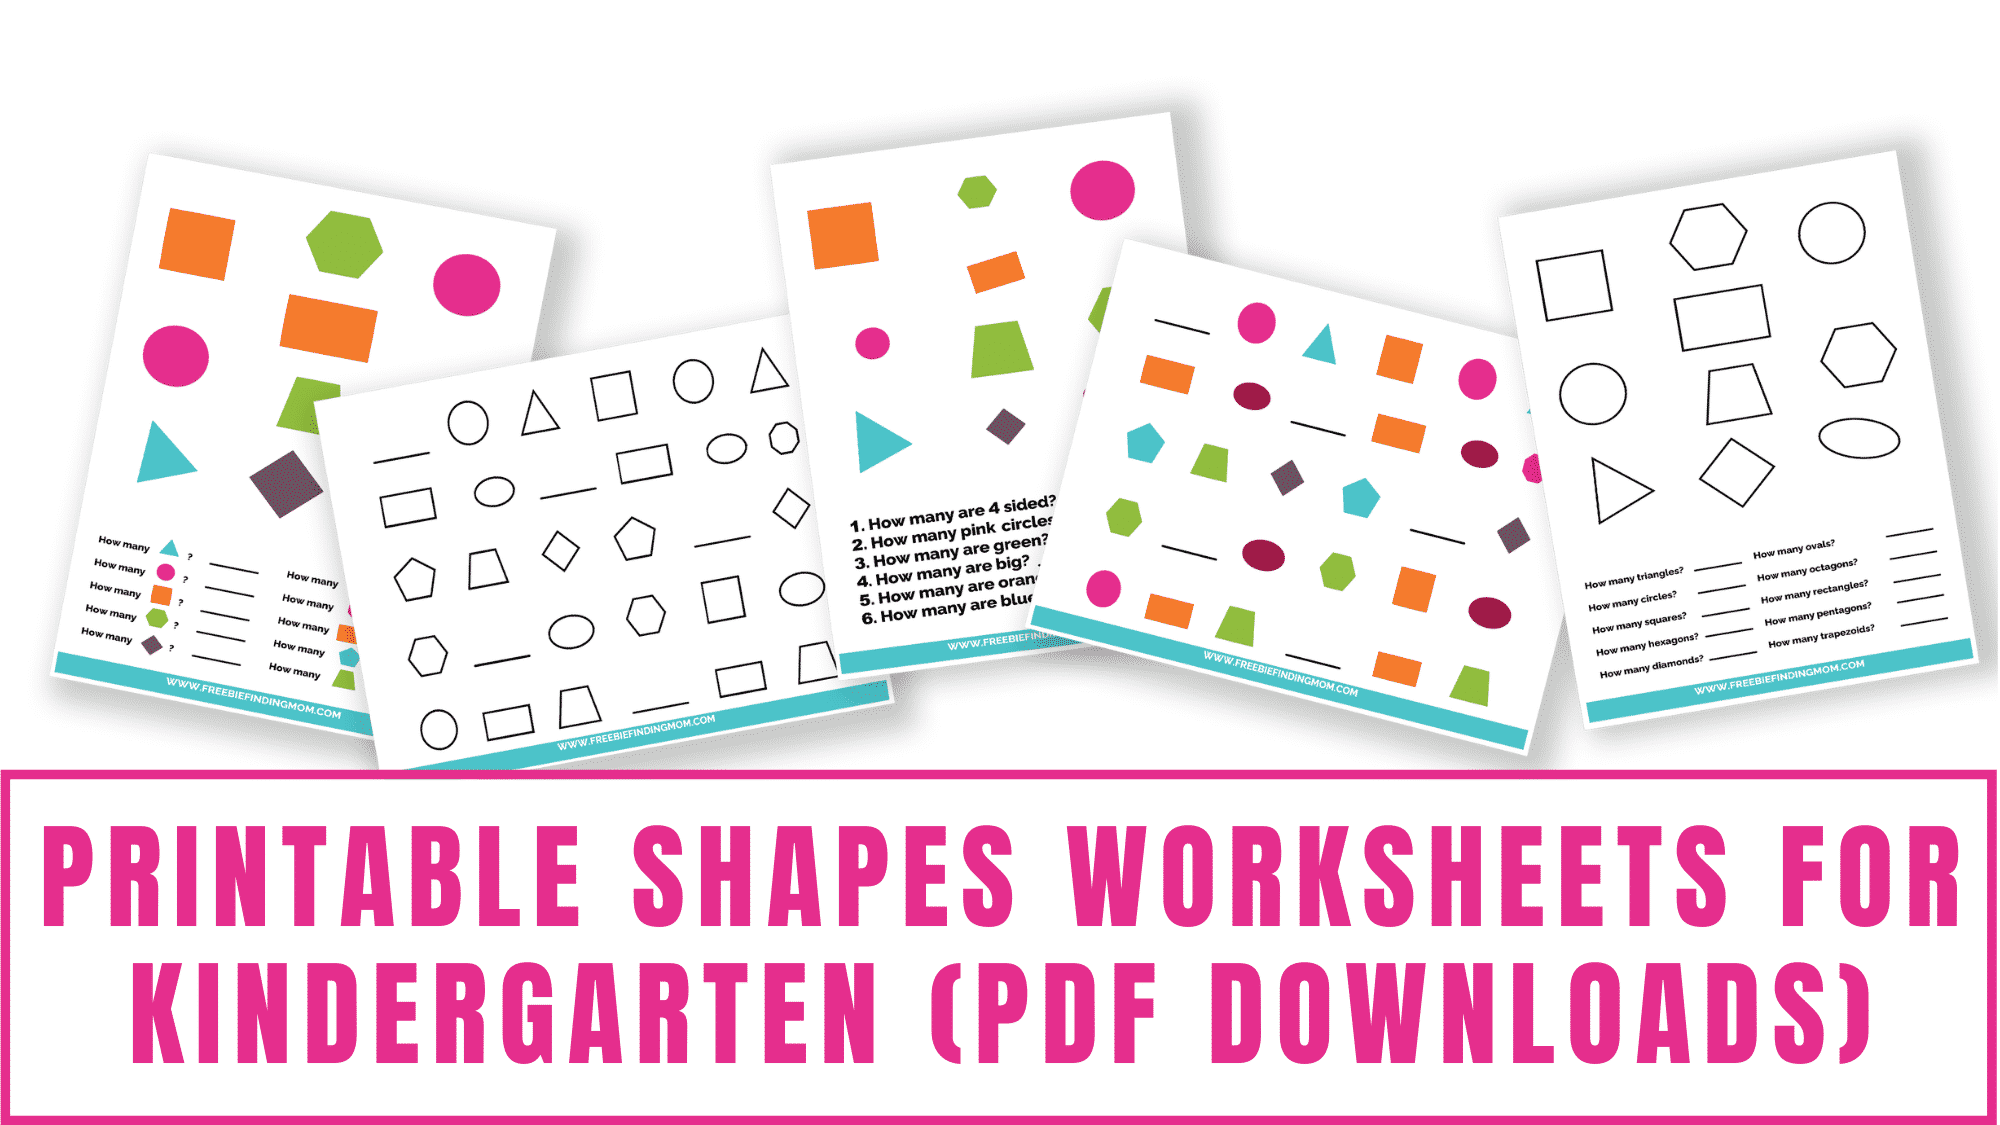 Help your kid practice shape matching and shape counting with these printable shapes worksheets for kindergarten pdf downloads.